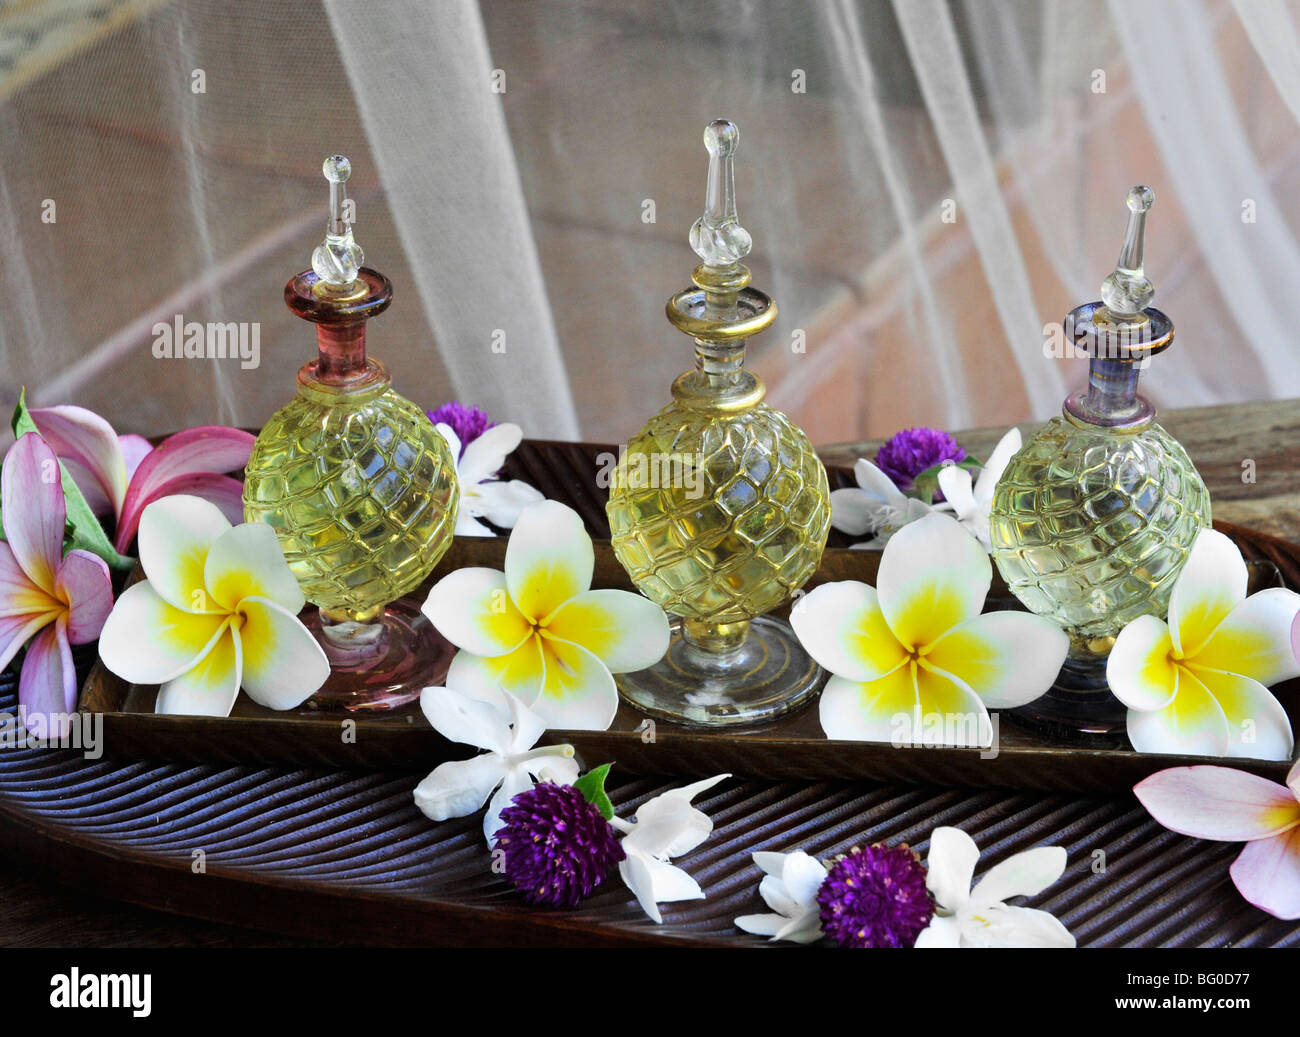 Massage oil bottles - Stock Image